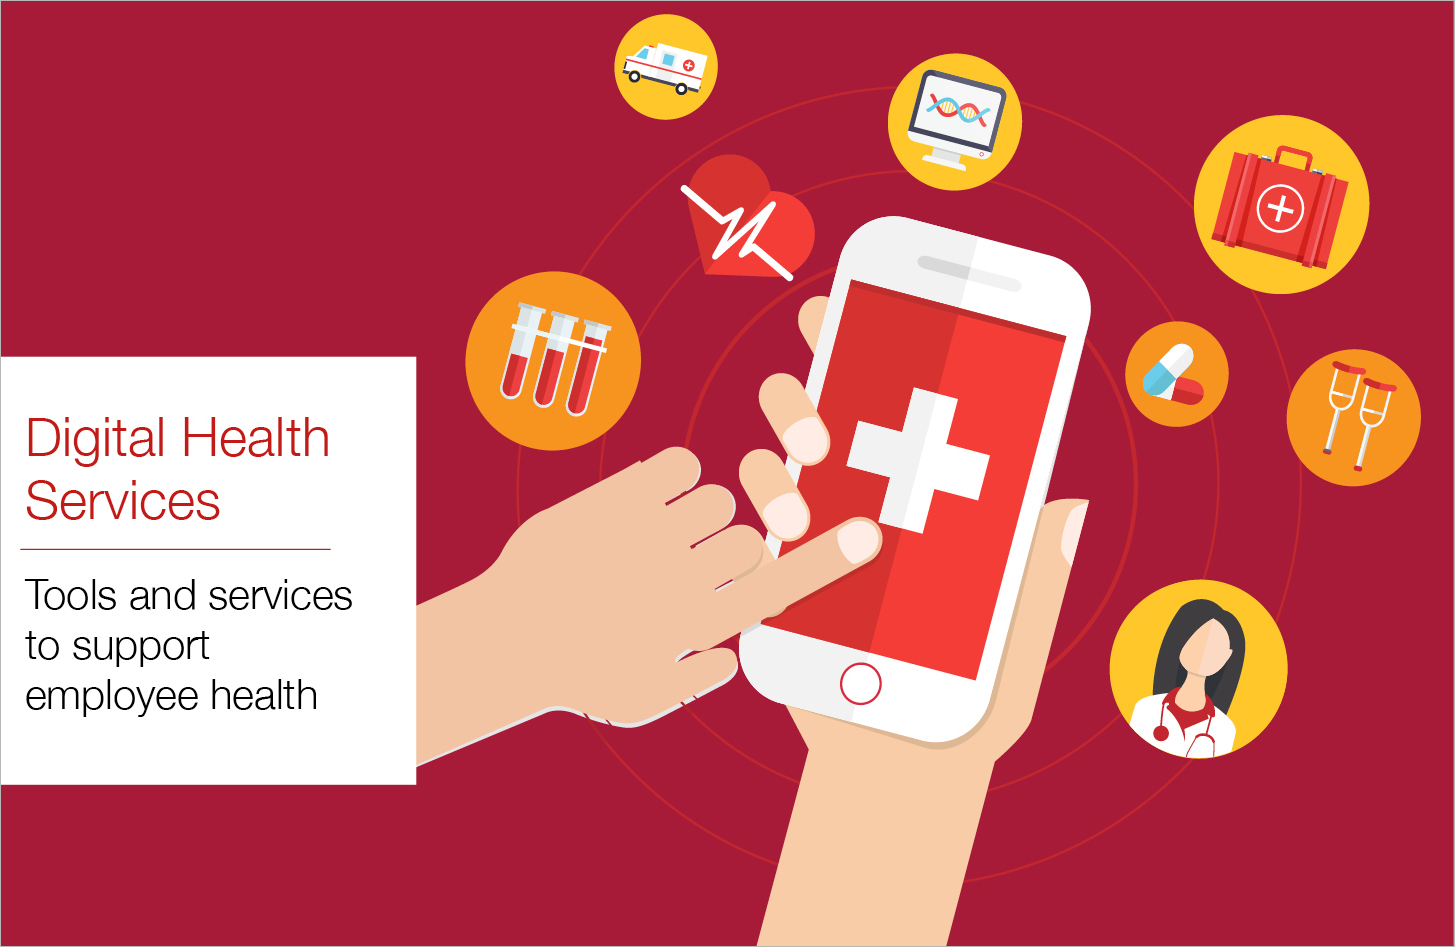 Digital Health Services